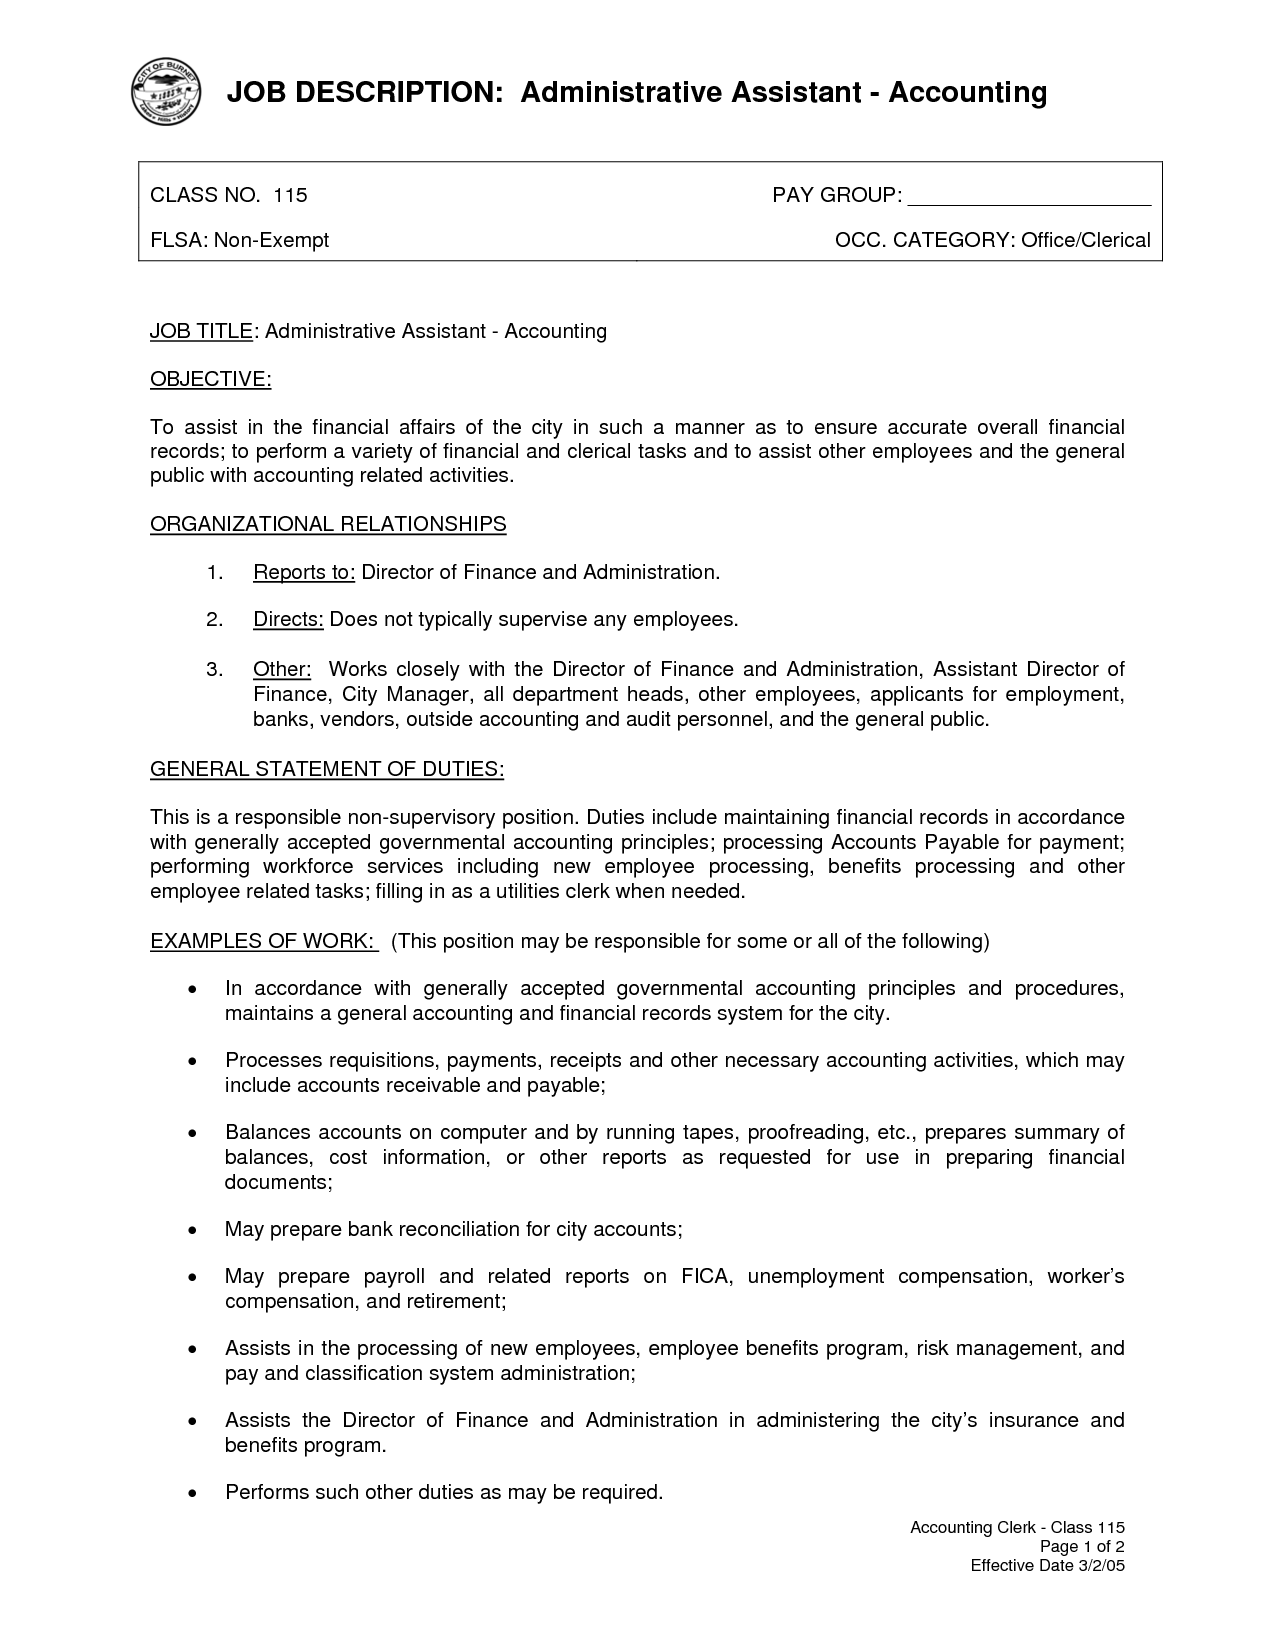 resume Admin Executive Roles And Responsibilities Resume administrative assistant resume duties office job description and responsibilities list